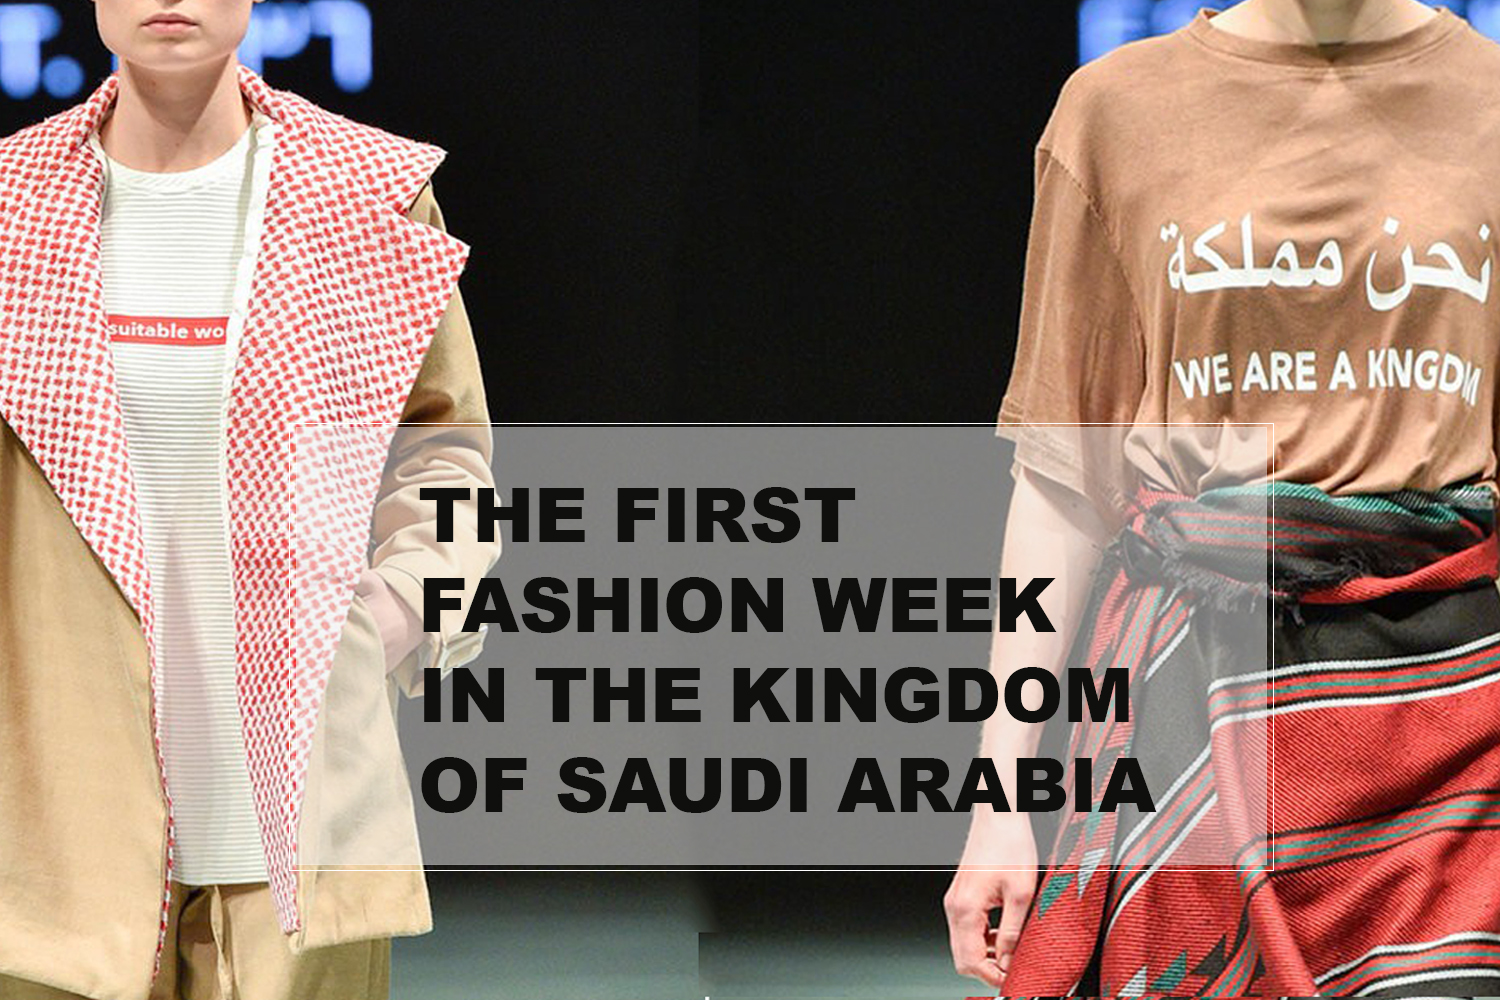 Arab Fashion Week - The First Fashion Week in the Kingdom of Saudi Arabia